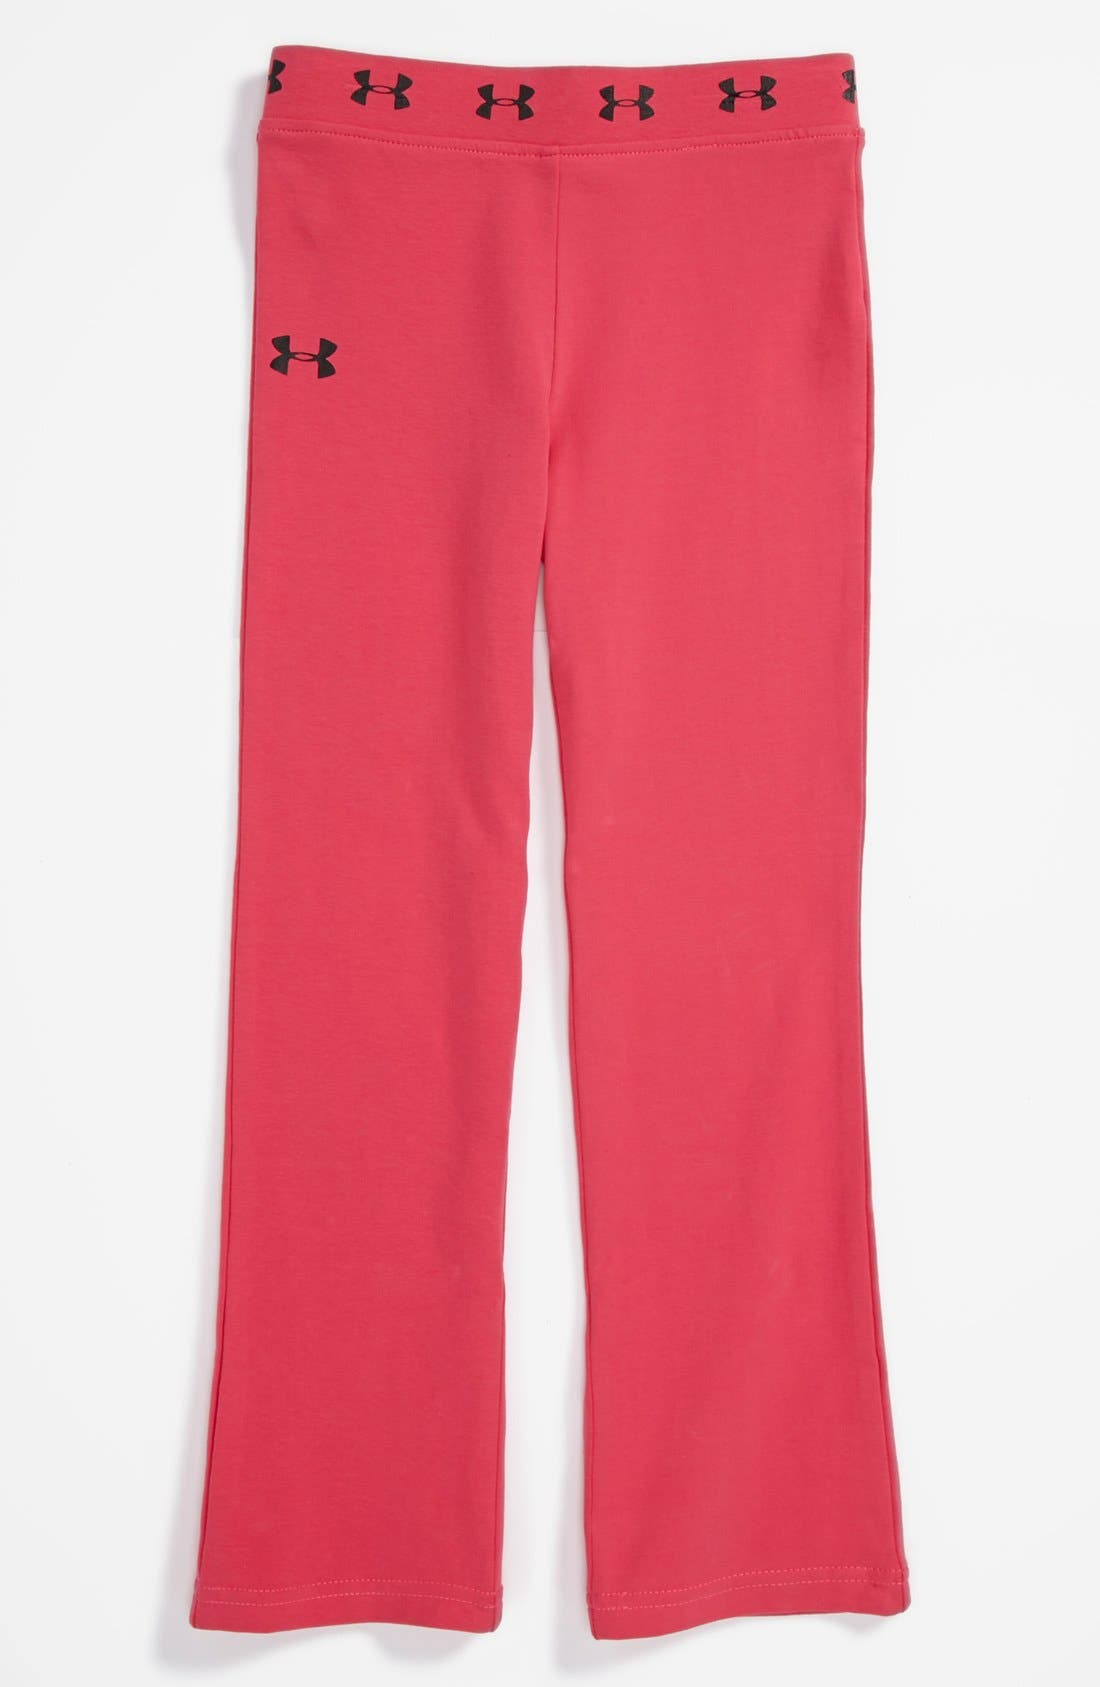 Main Image - Under Armour Yoga Pants (Little Girls)